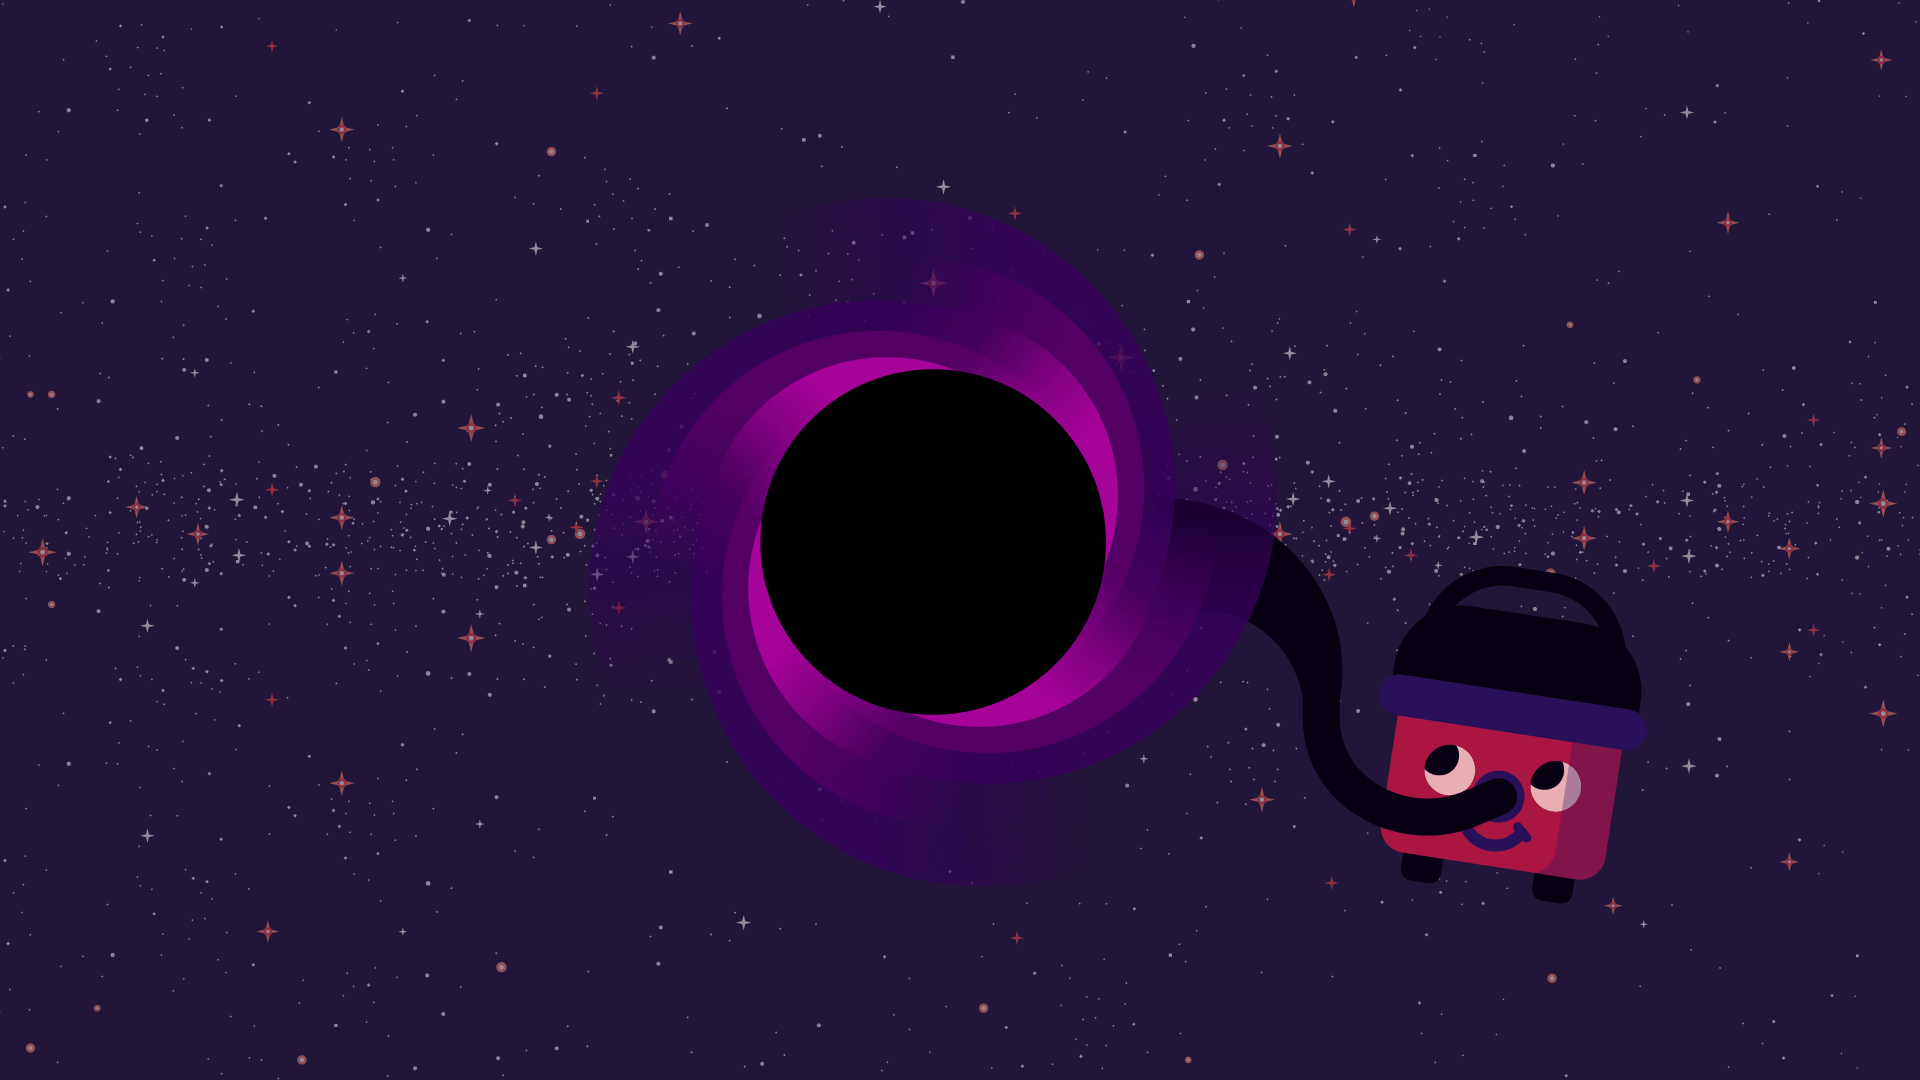 080_Website Project Black Holes_Kurzgesagt Project Pic 10